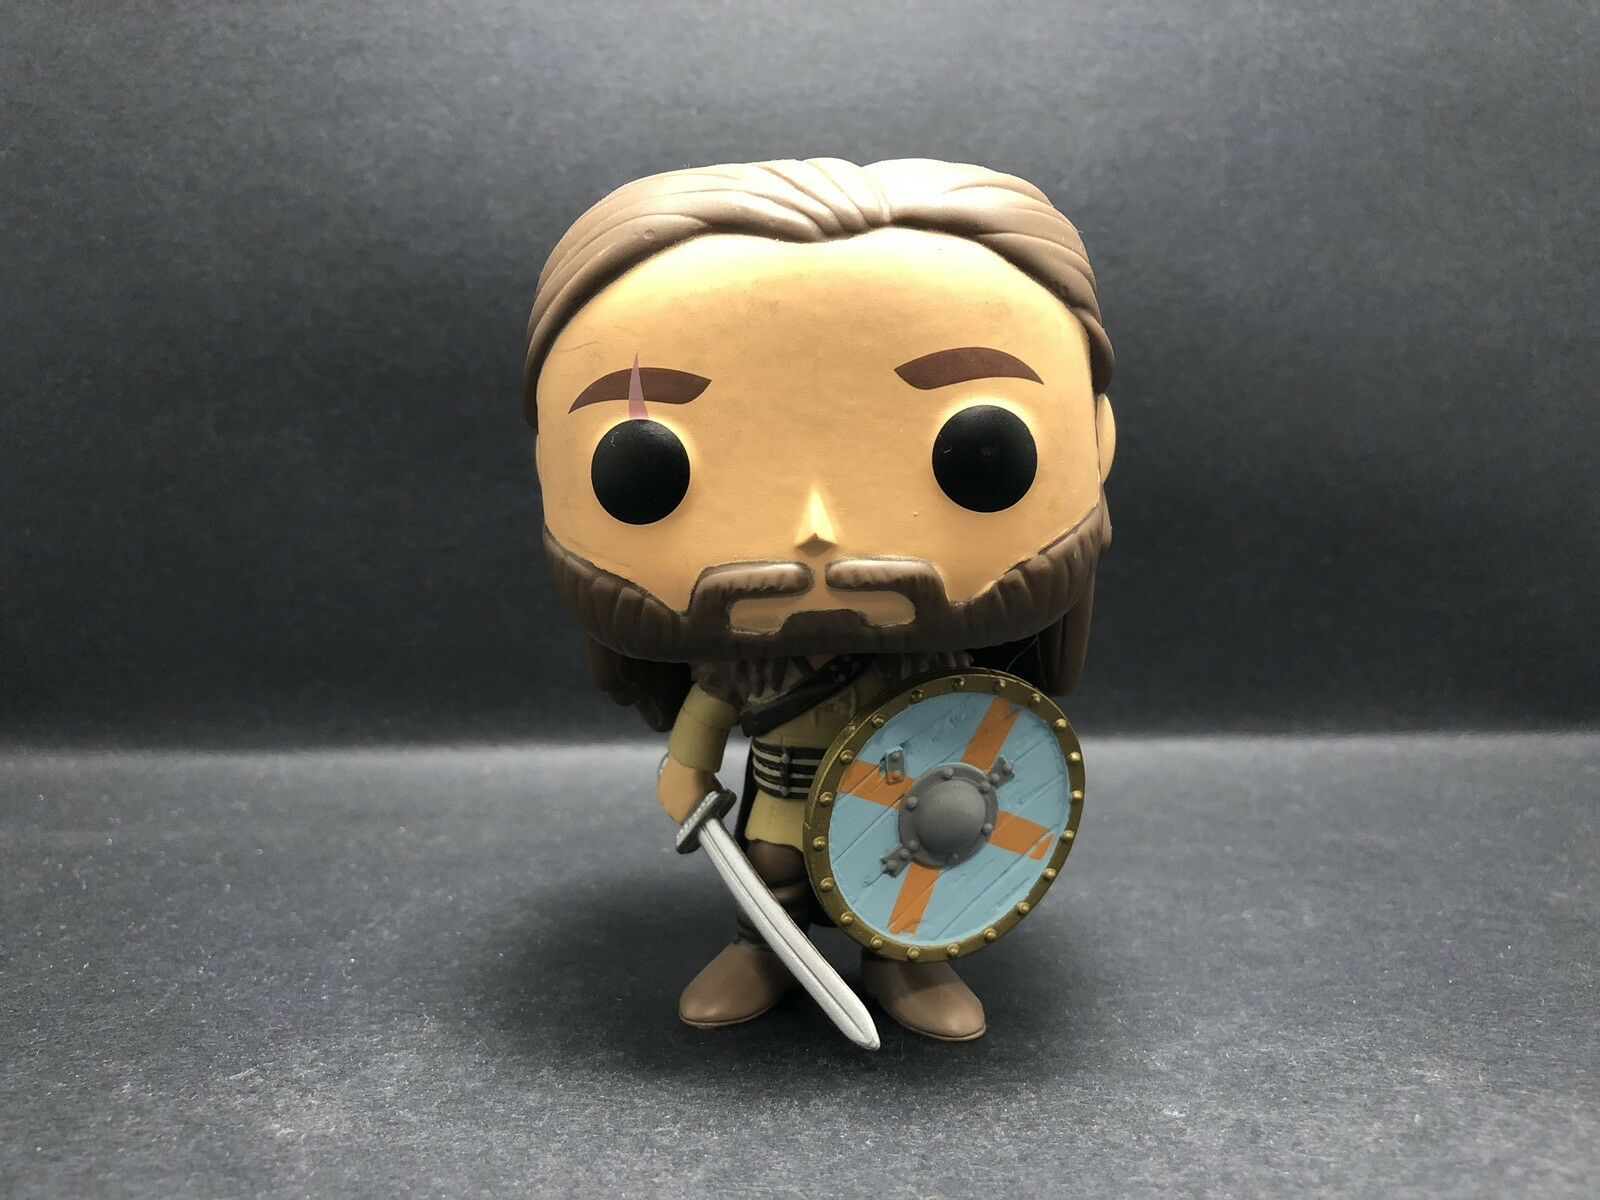 Rollo  179 Vikings (OOB Out of Box) - VERY RARE & VAULTED Funko Pop Vinyl